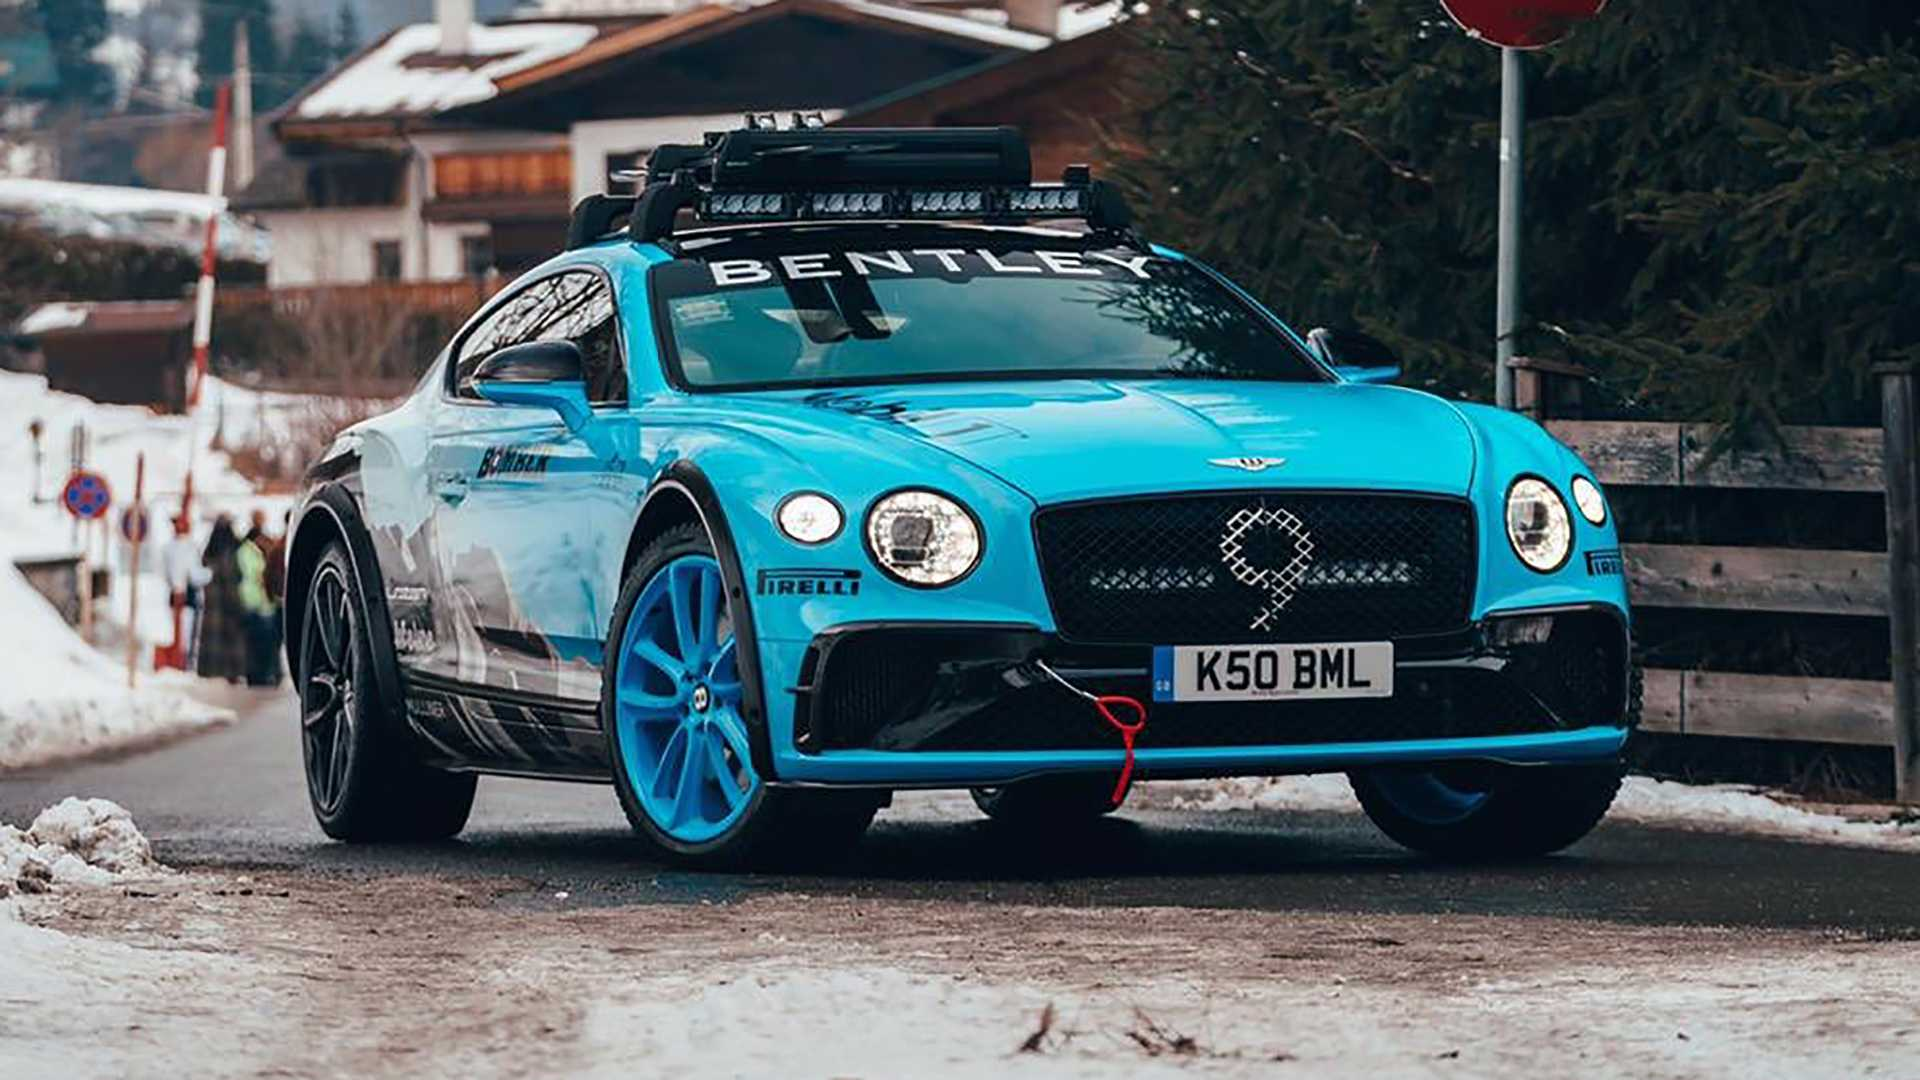 Bentley teases rally-ready Continental GT in Austria